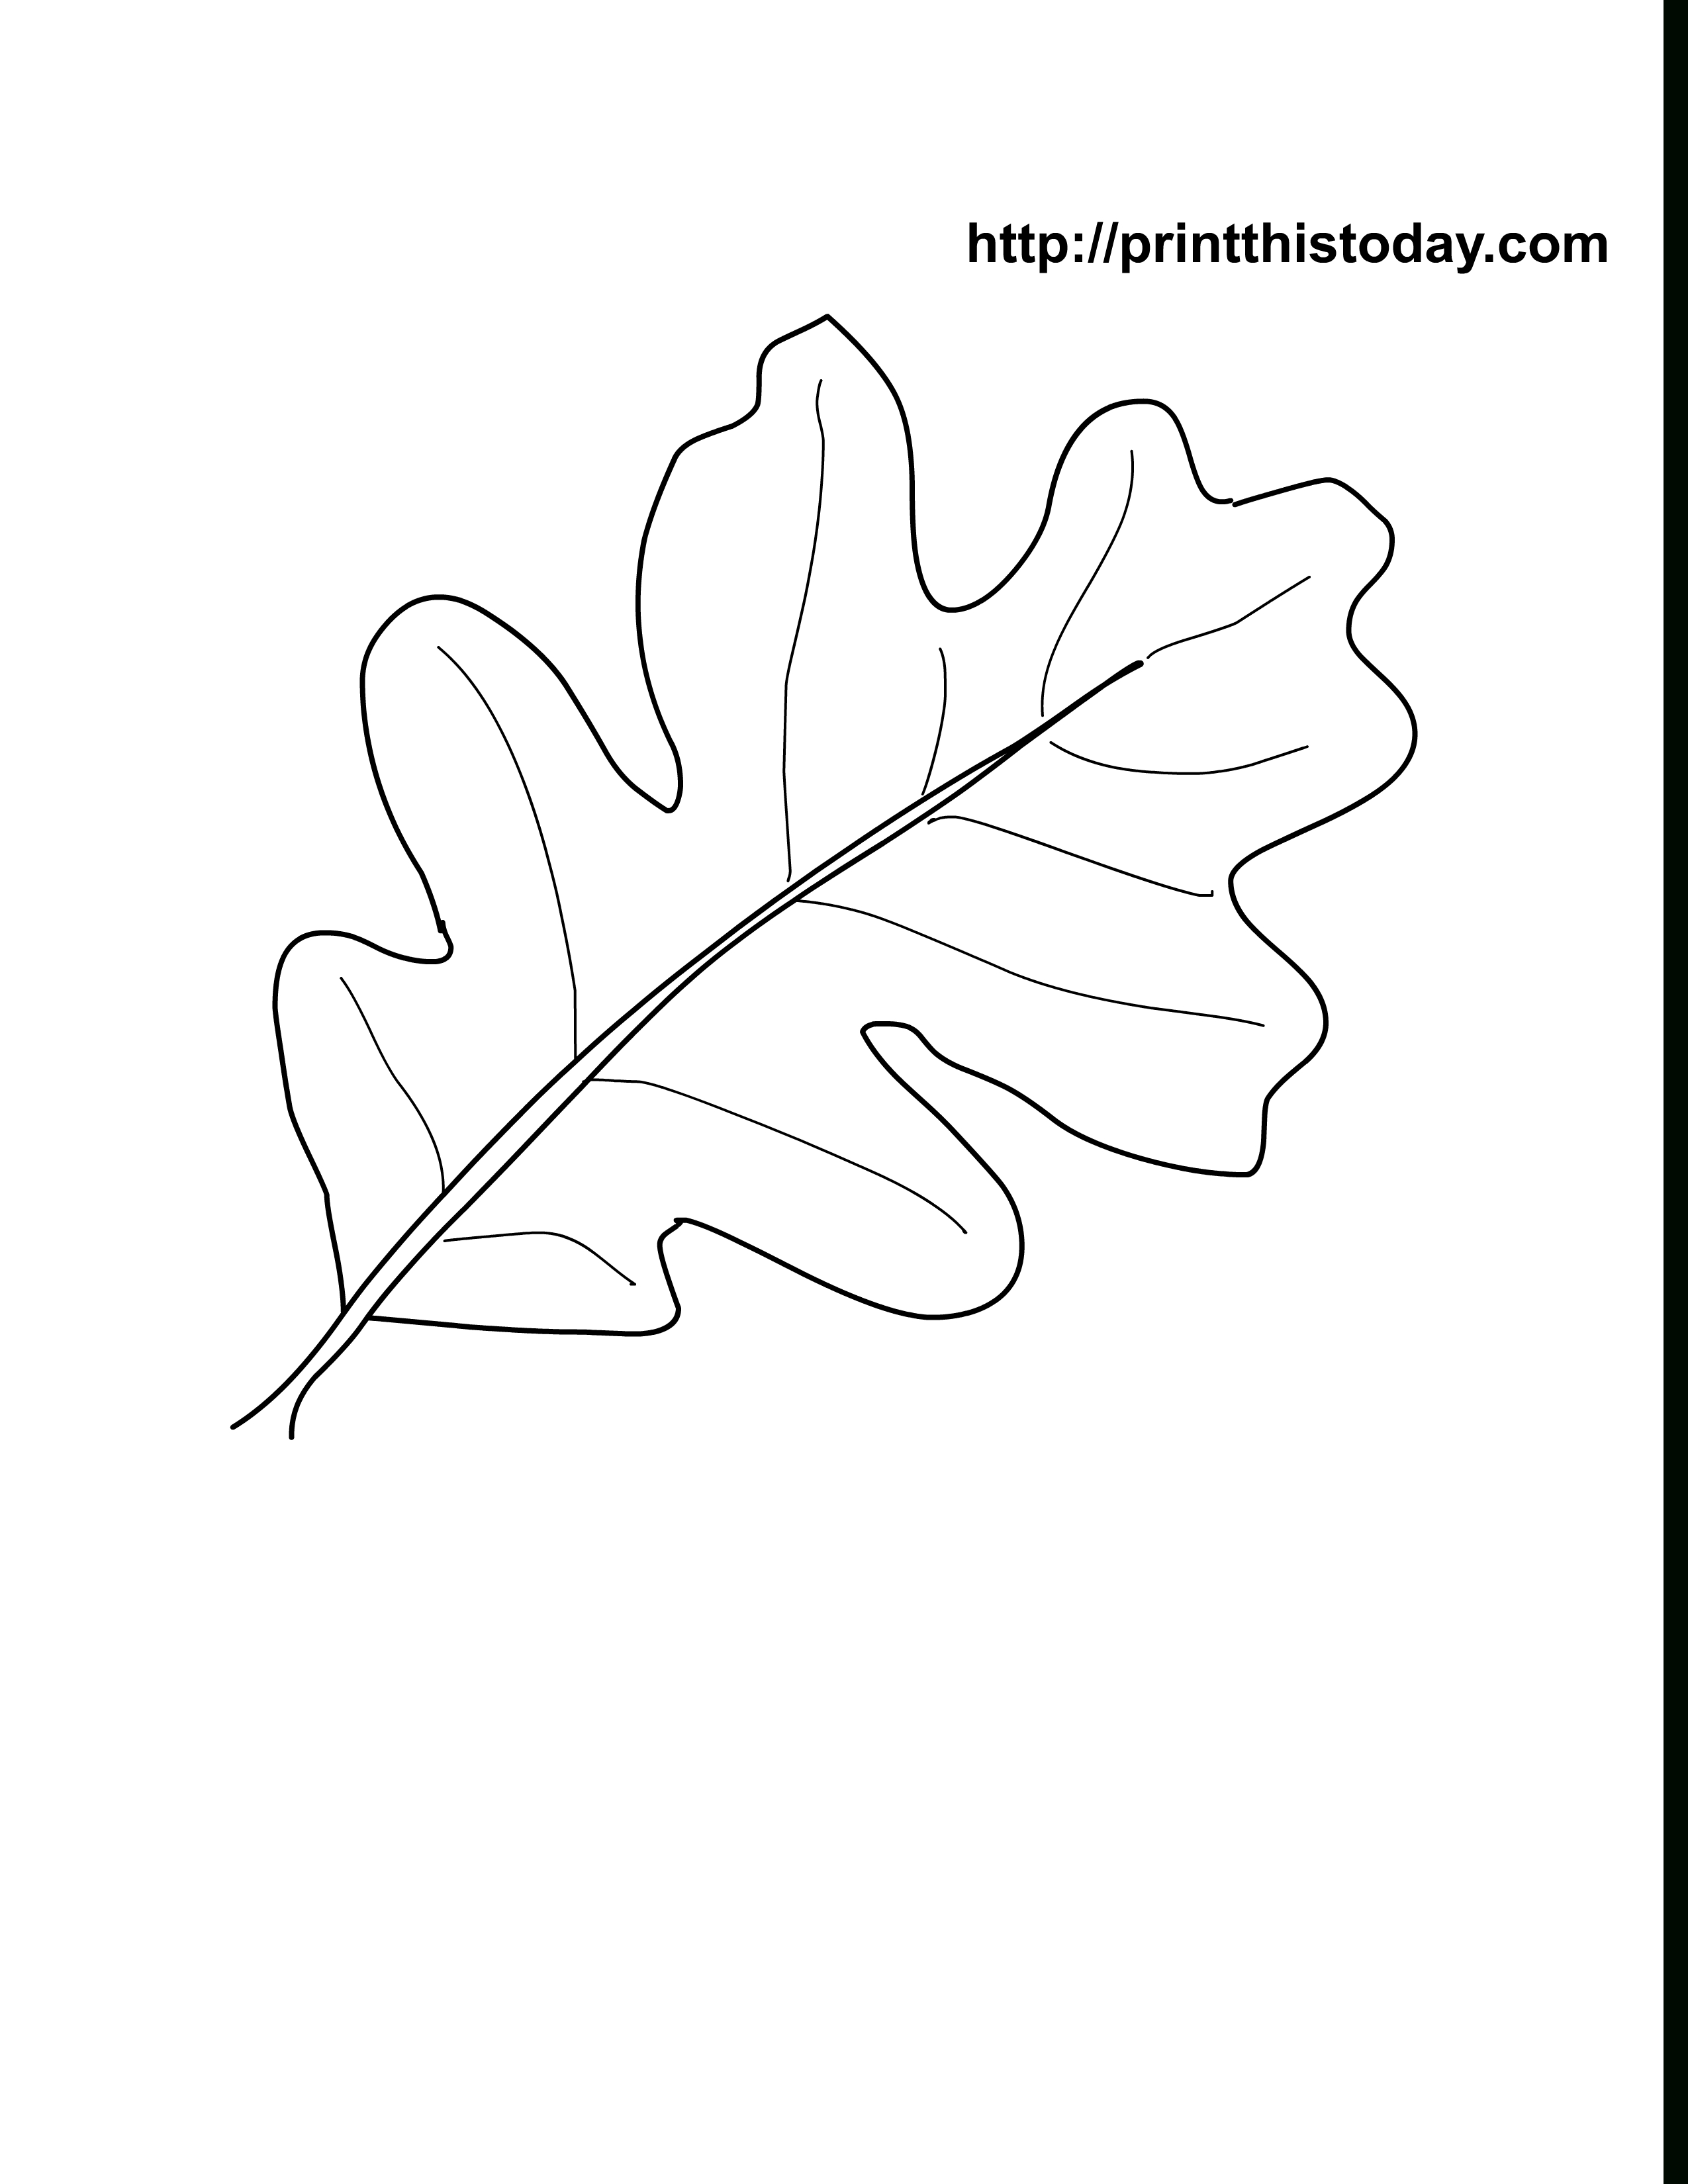 Oak Leaves Coloring Pages Printable | Craft Ideas | Pinterest - Free Printable Leaves